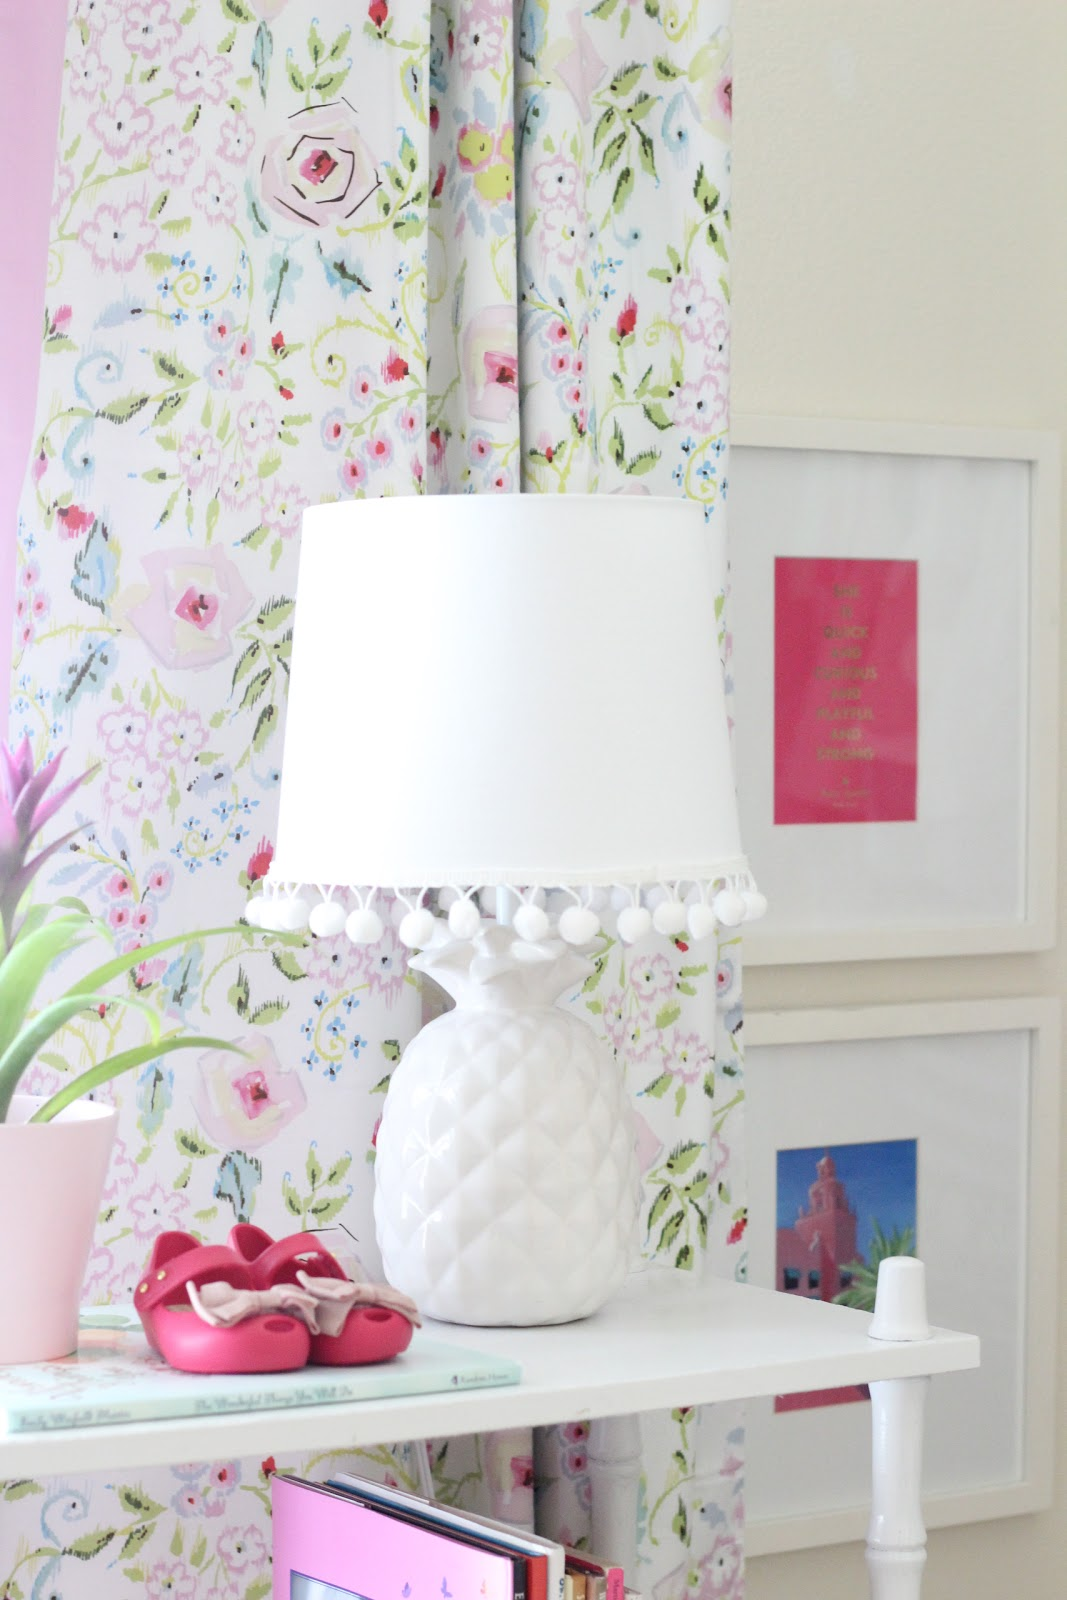 Life with a Dash of Whimsy: DIY Pom Pom Lamp Shade